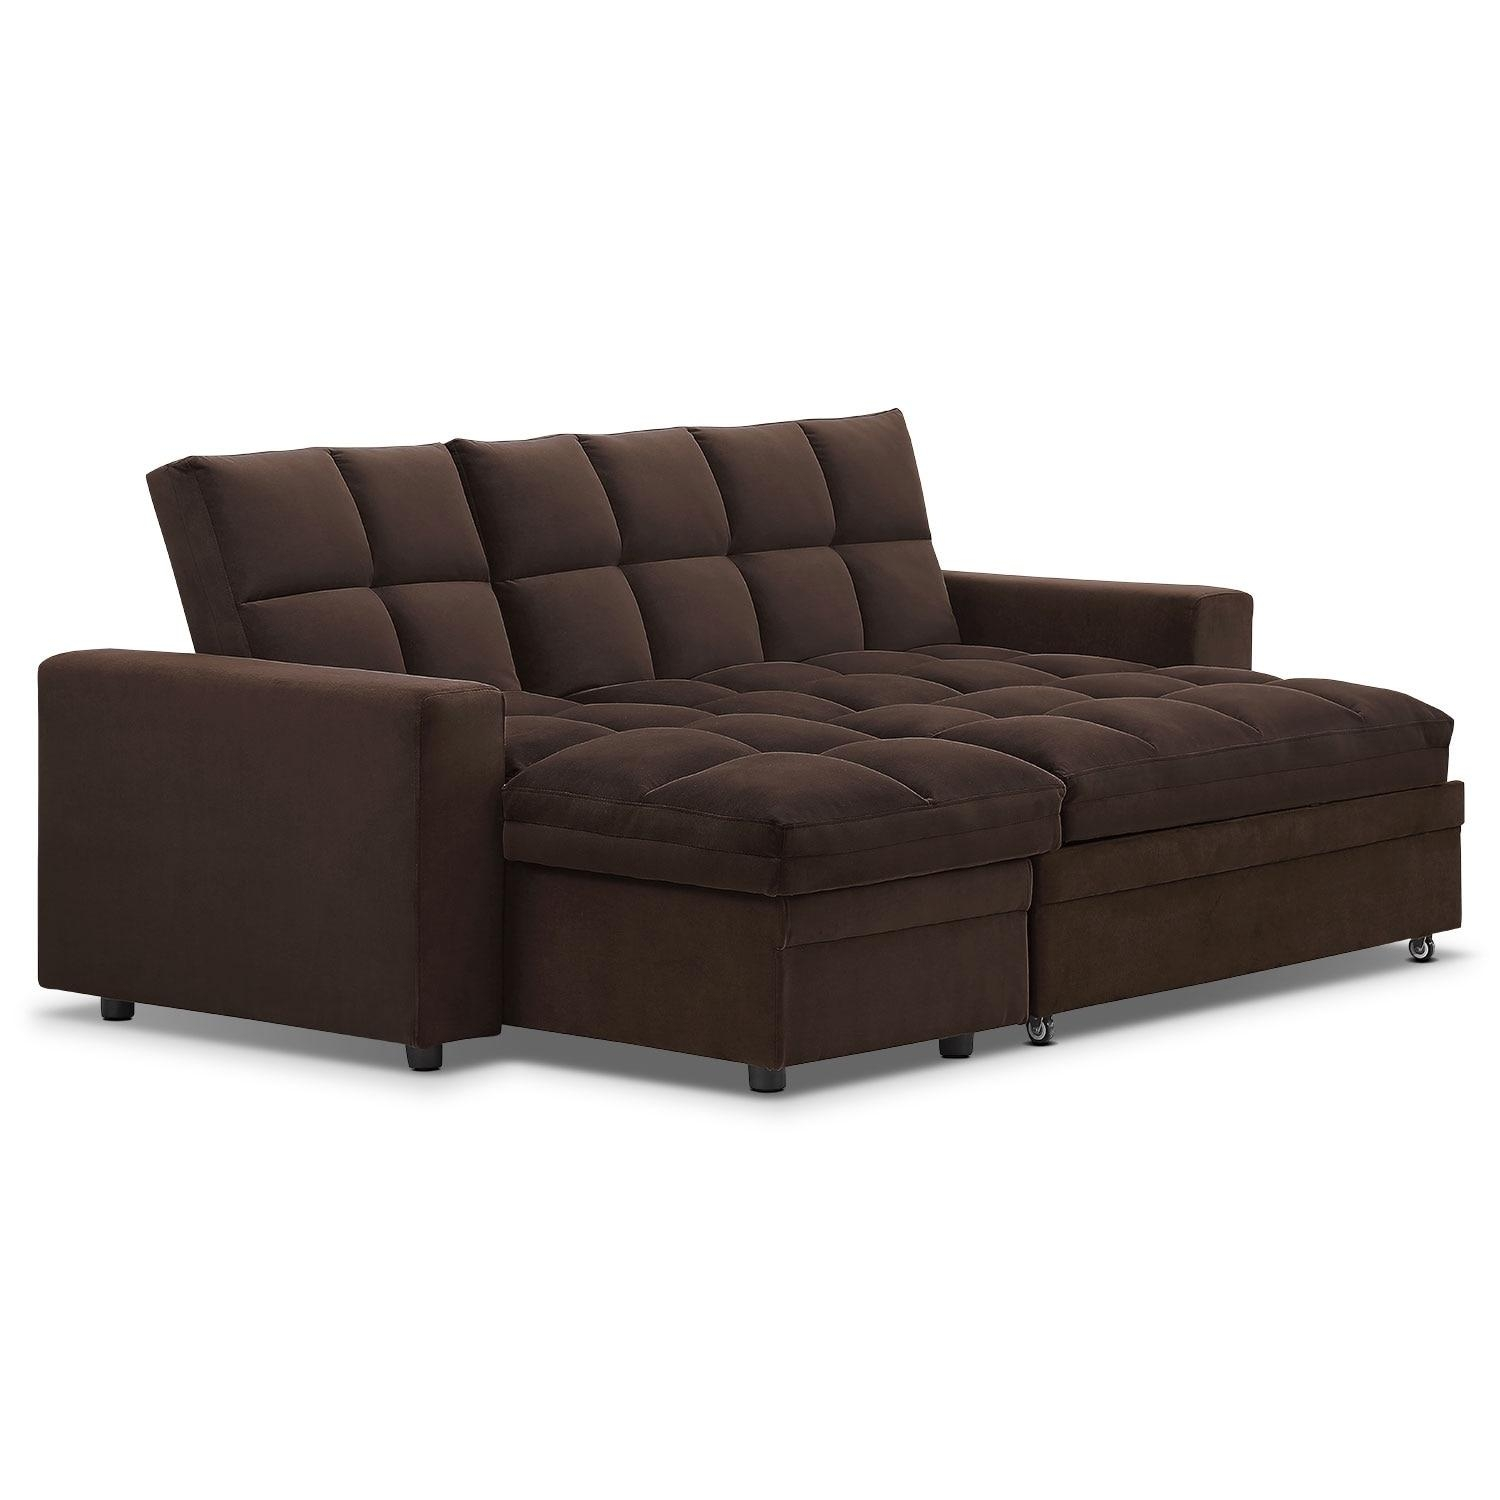 Metro Chaise Sofa Bed With Storage – Brown | American Signature Throughout Chaise Sofa Chairs (View 15 of 20)